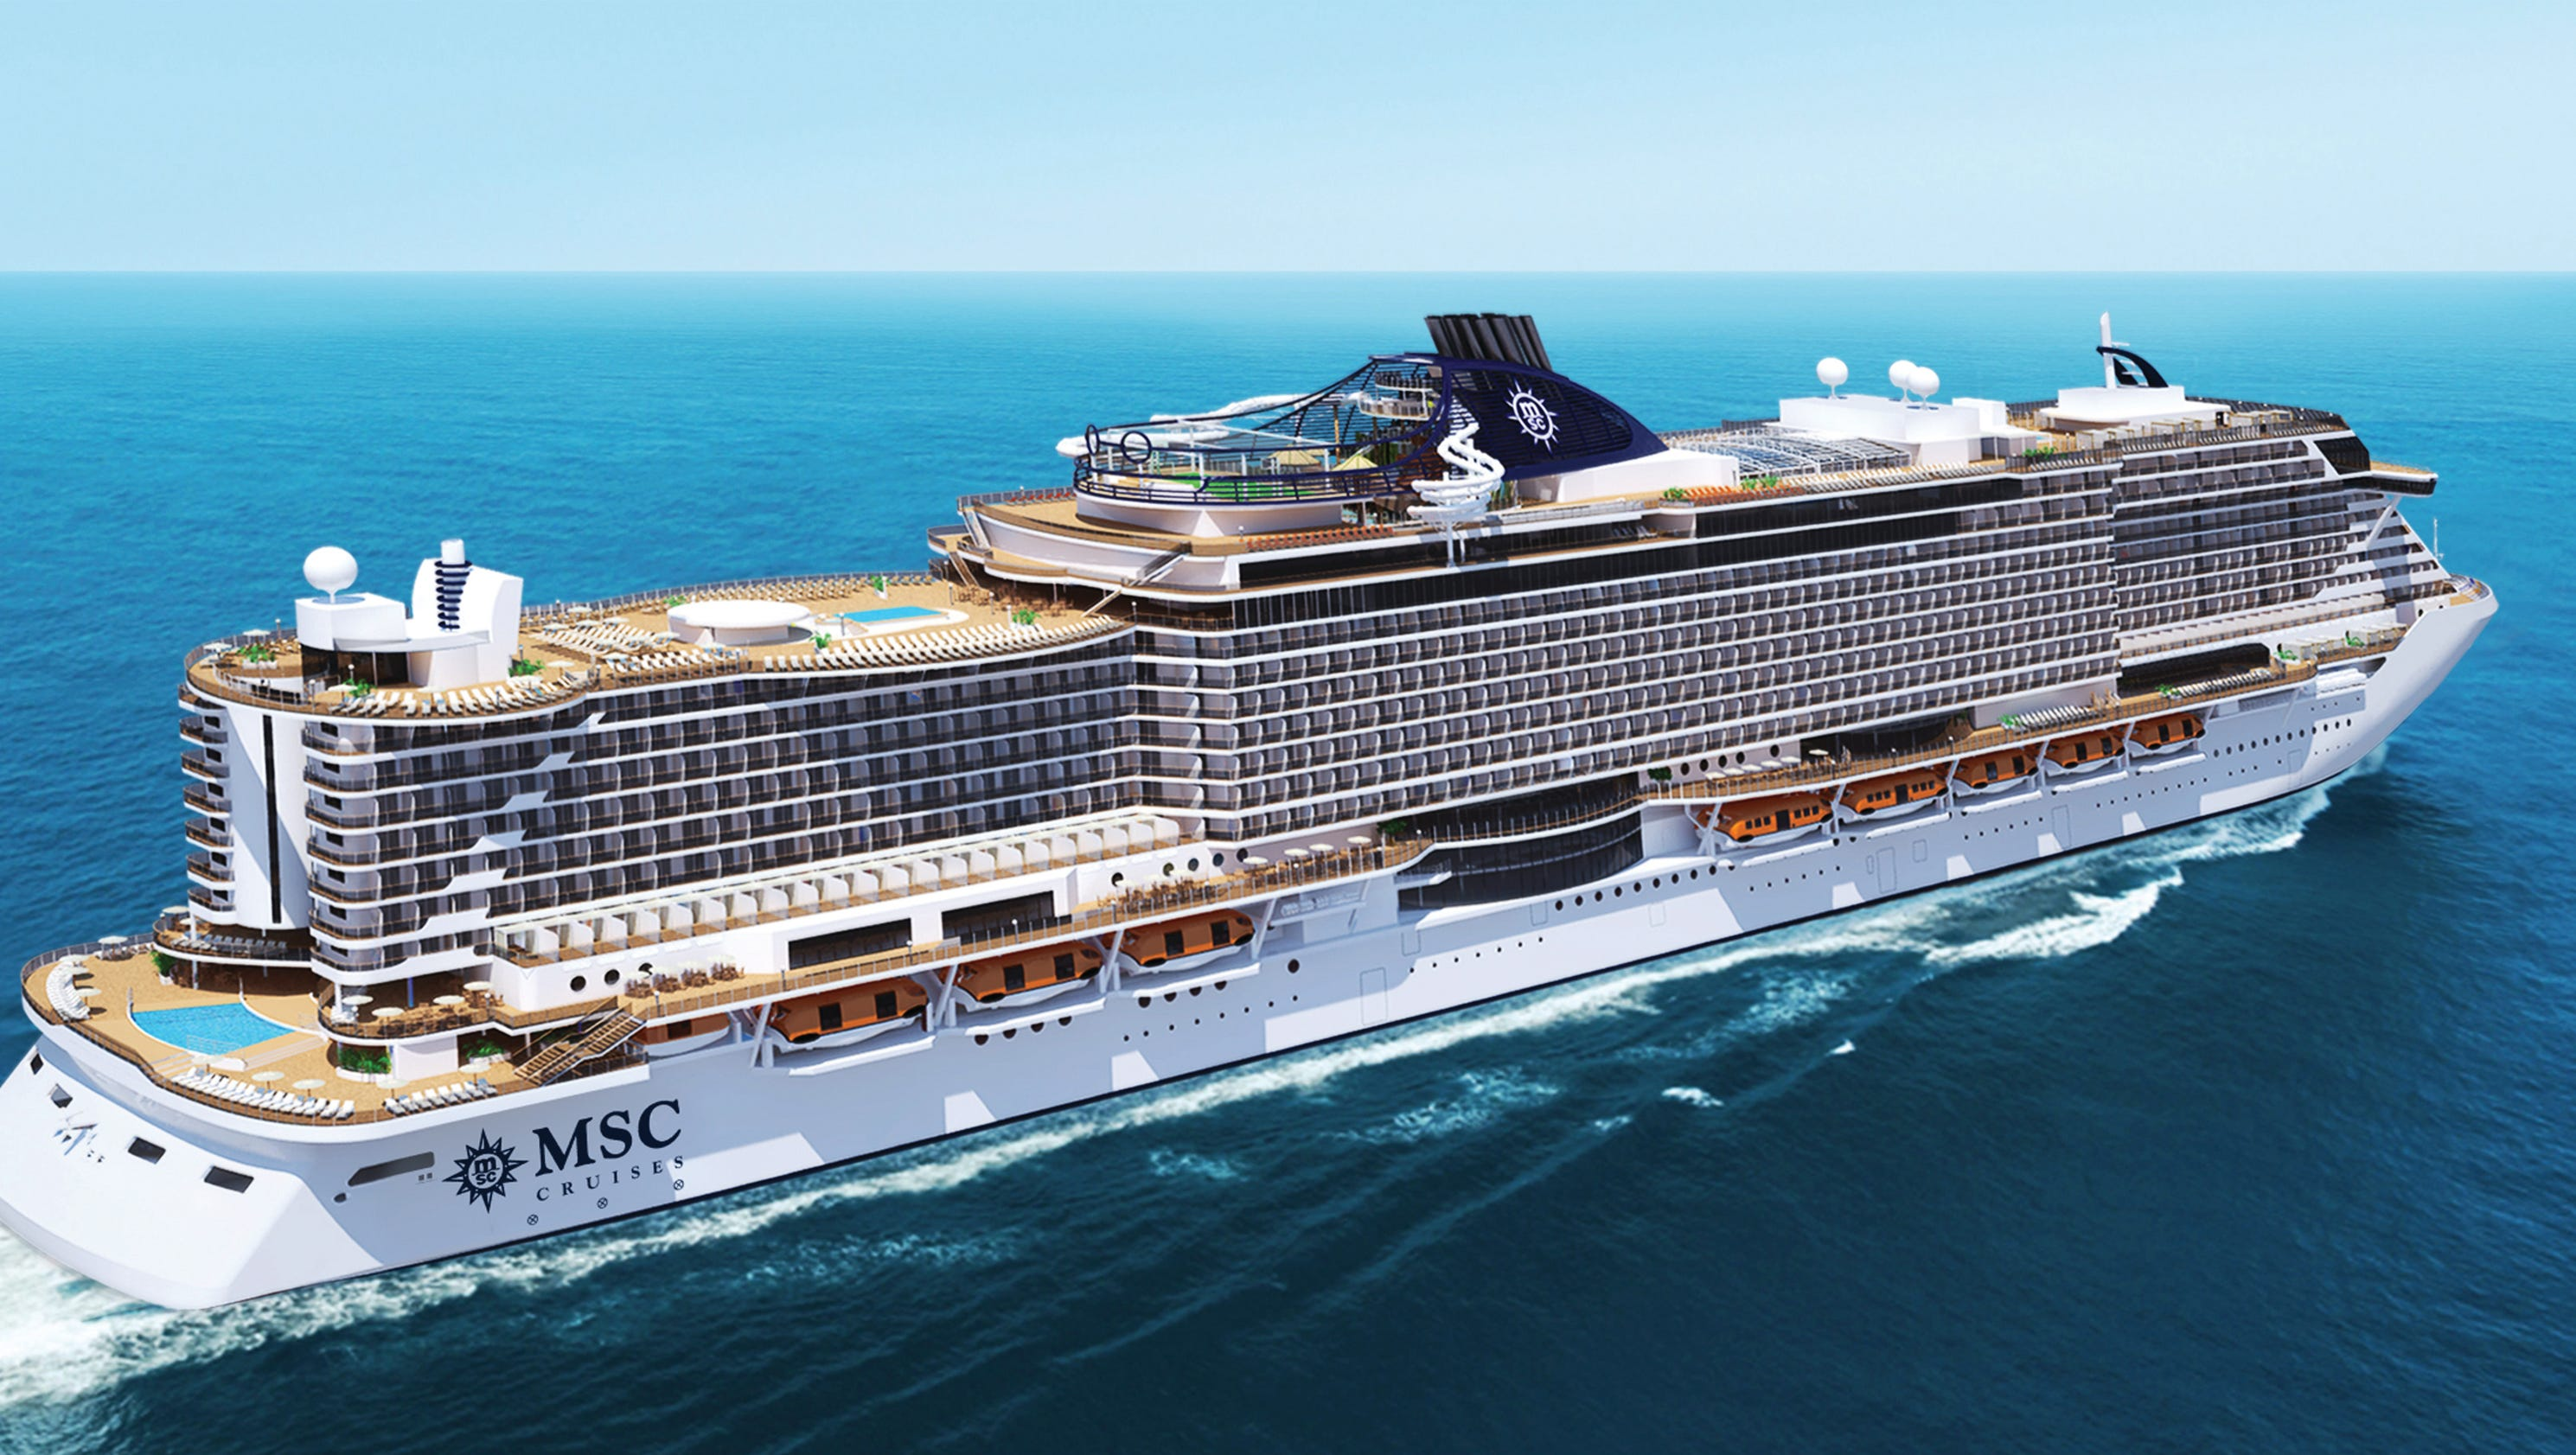 MSC Cruises to U.S. vacationers: We're back!